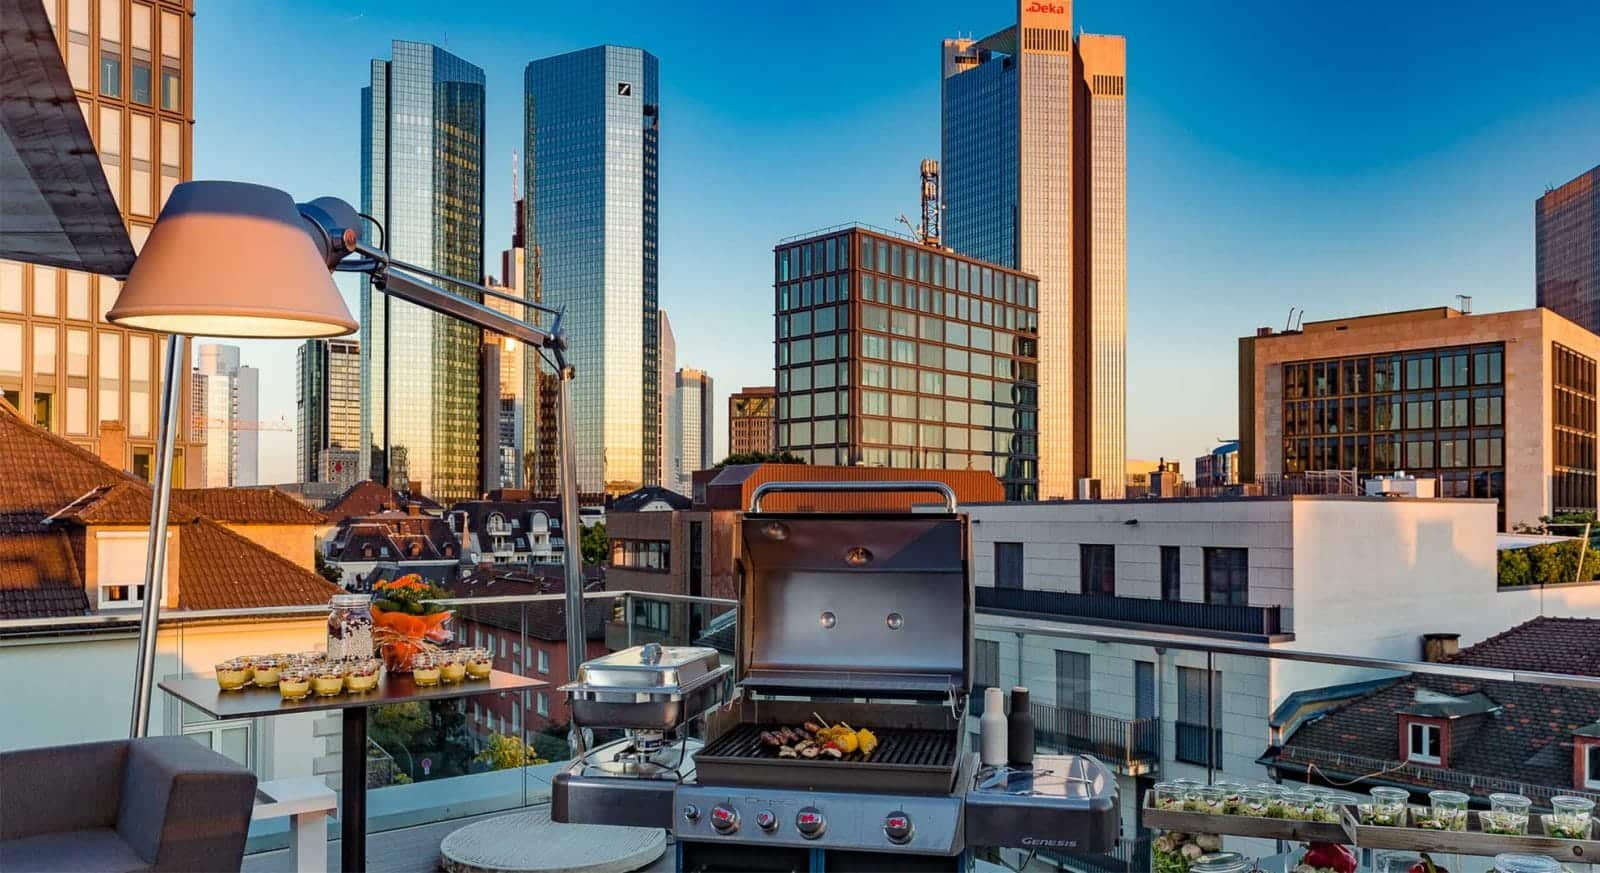 Betriebsausflug und Sommerfest: Die Rooftop Location in Frankfurt am Main - Ideale Location für Firmenveranstaltungen und Gruppenevents. Eventlocations in Frankfurt am Main